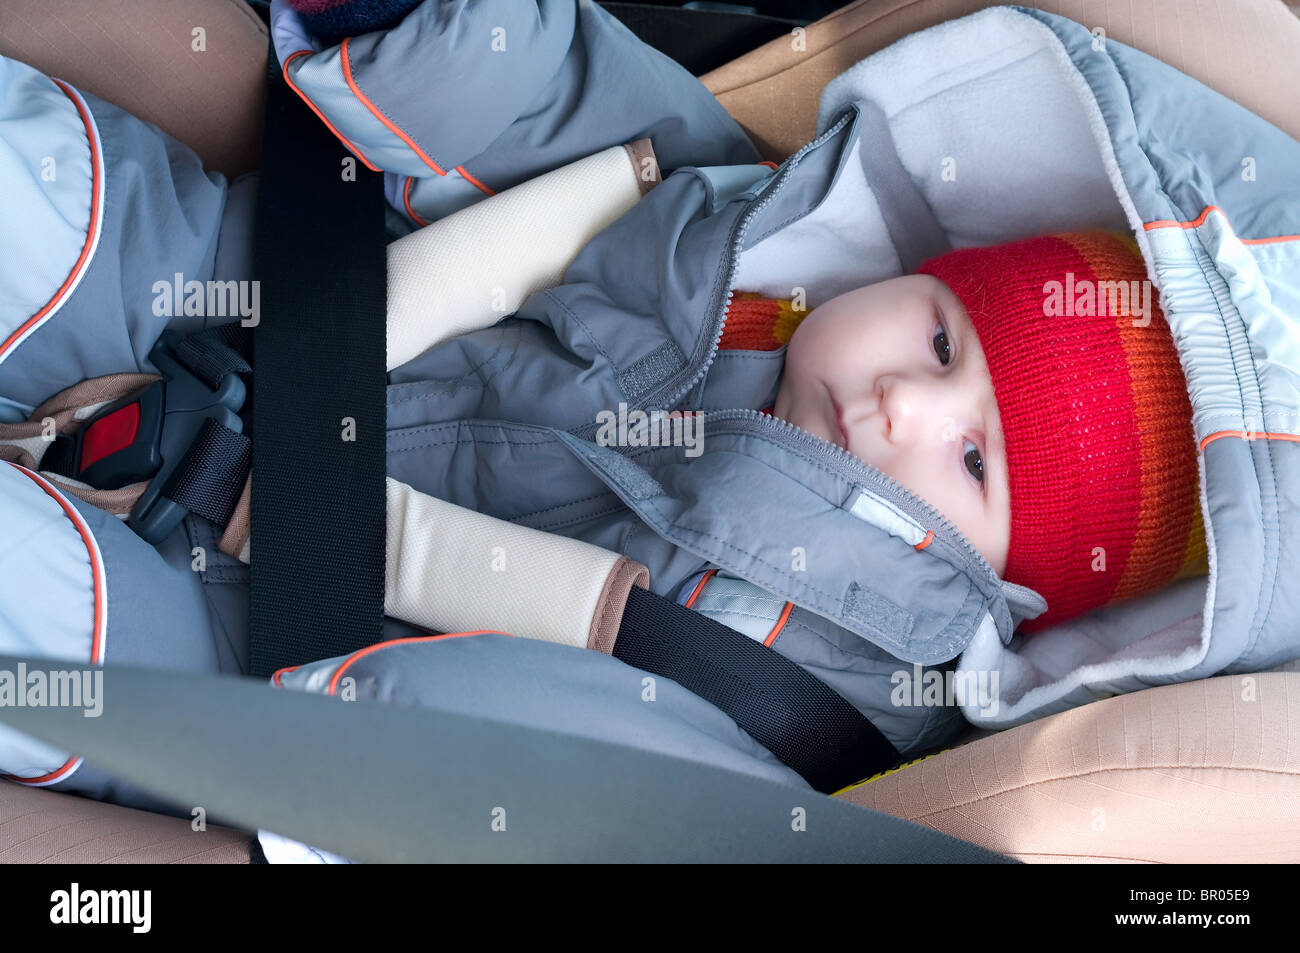 Booster Seat Stock Photos & Booster Seat Stock Images - Alamy